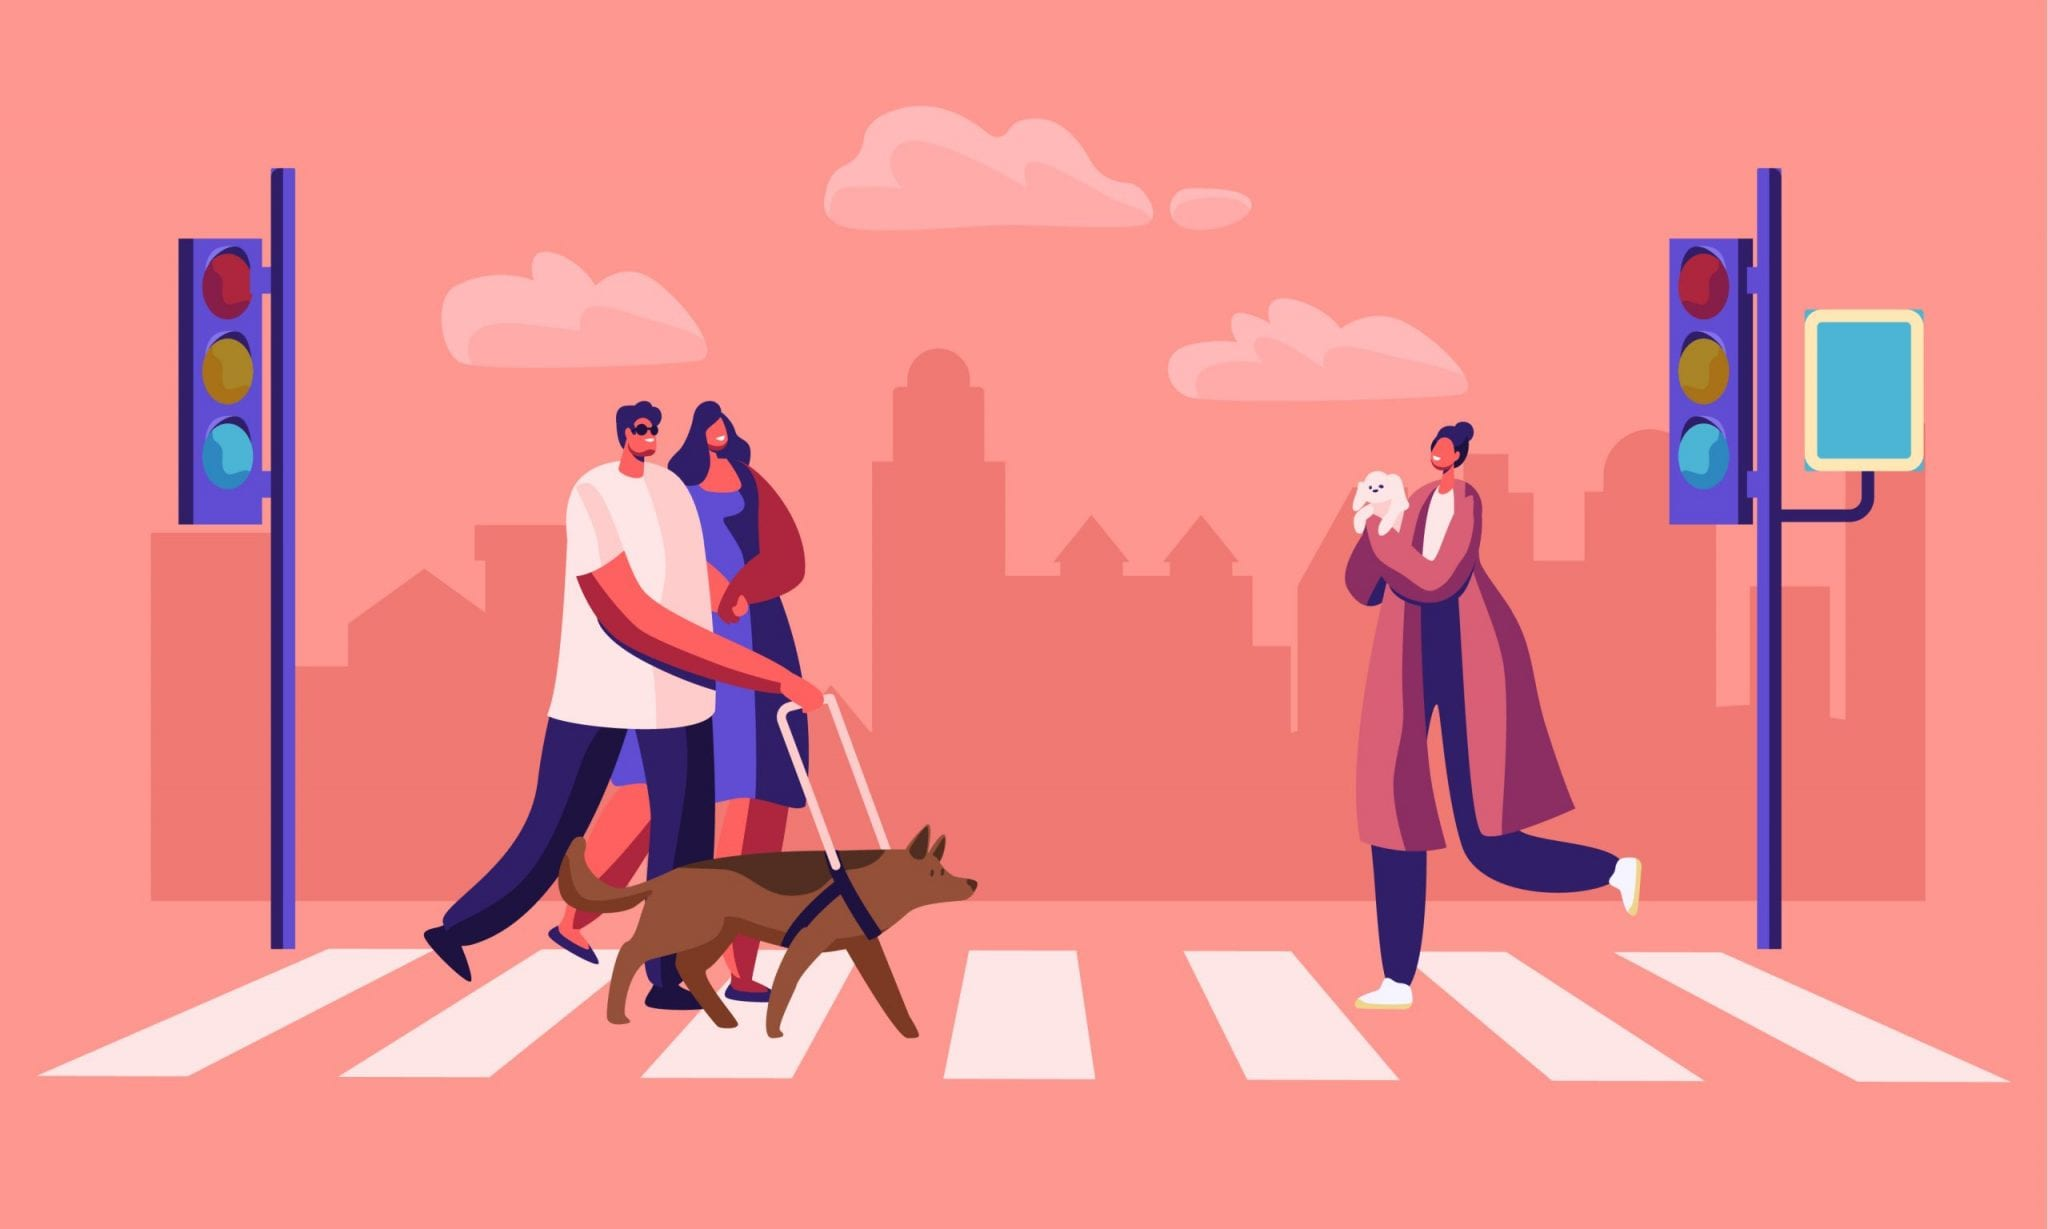 Disabled and Healthy Pedestrians With Pets Crossing Road Interchange in City, Blind Man Walking With Guide Dog and Woman Hold His Hand. Characters on Street Crosswalk.